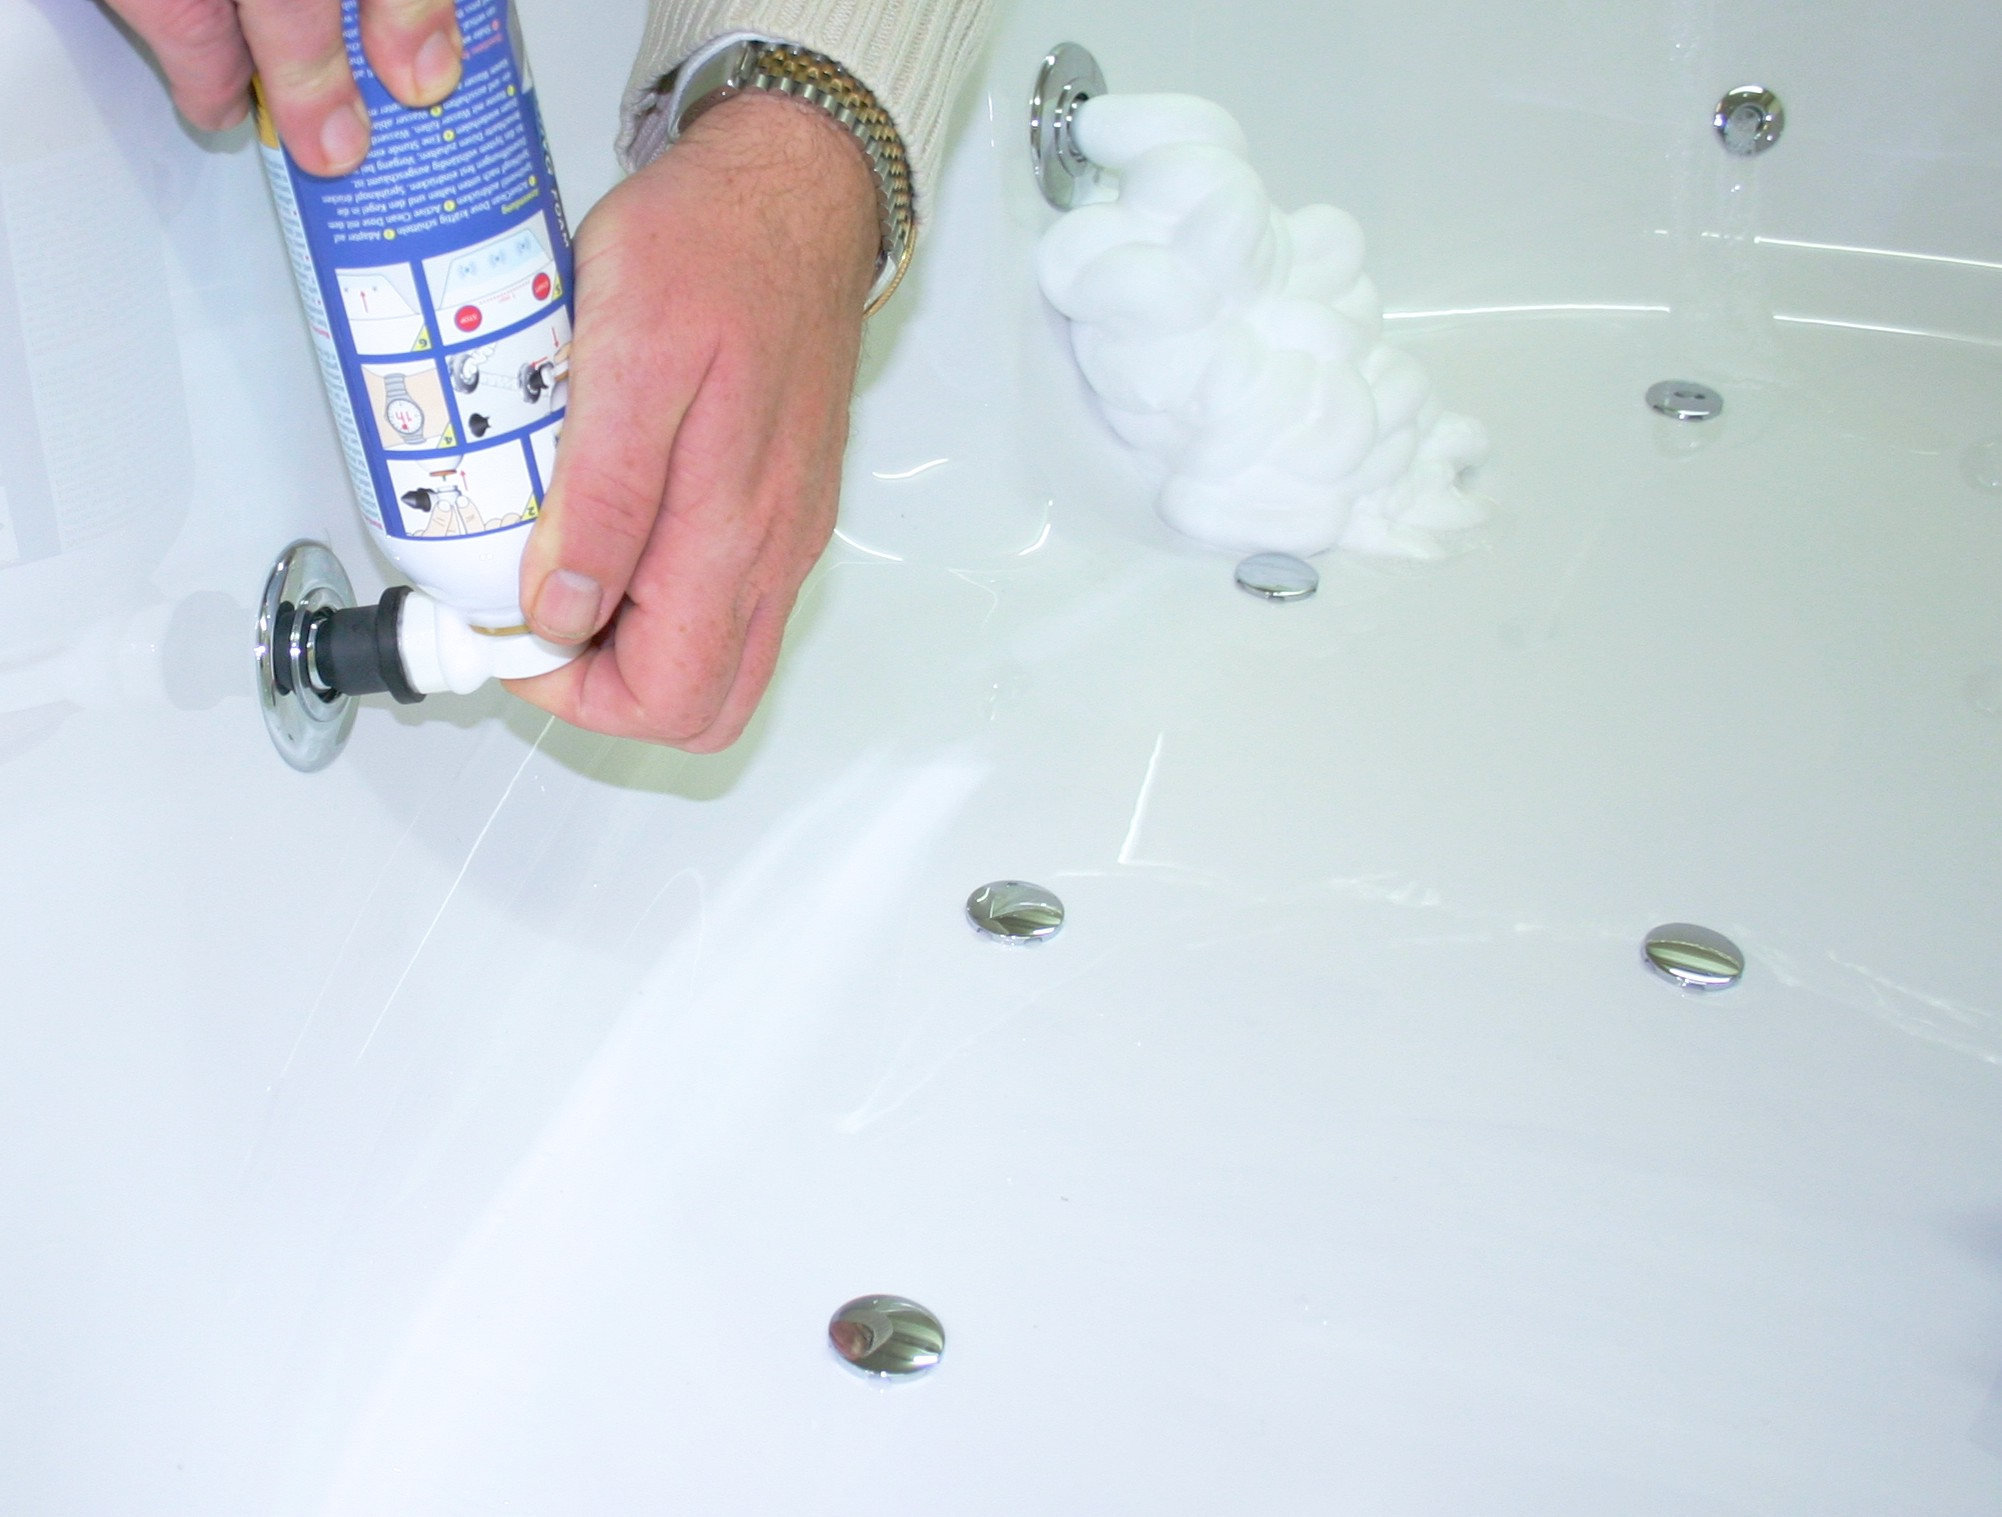 Biofilm cleaner foam 500ml bottle refill cleaning your jacuzzi!